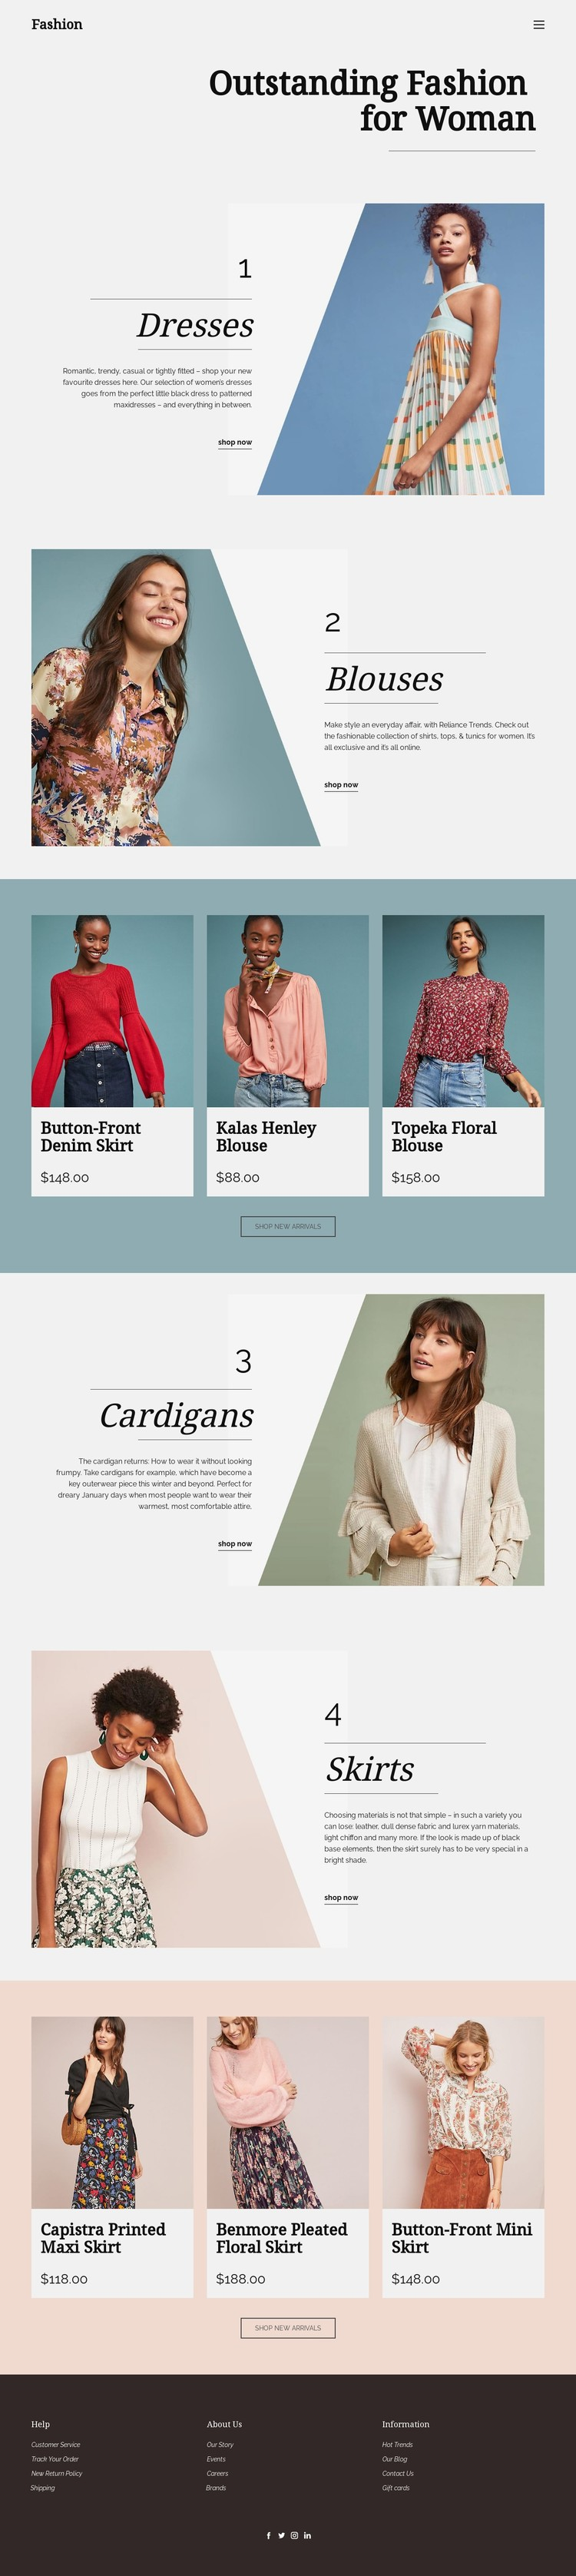 Fashion for Woman Static Site Generator